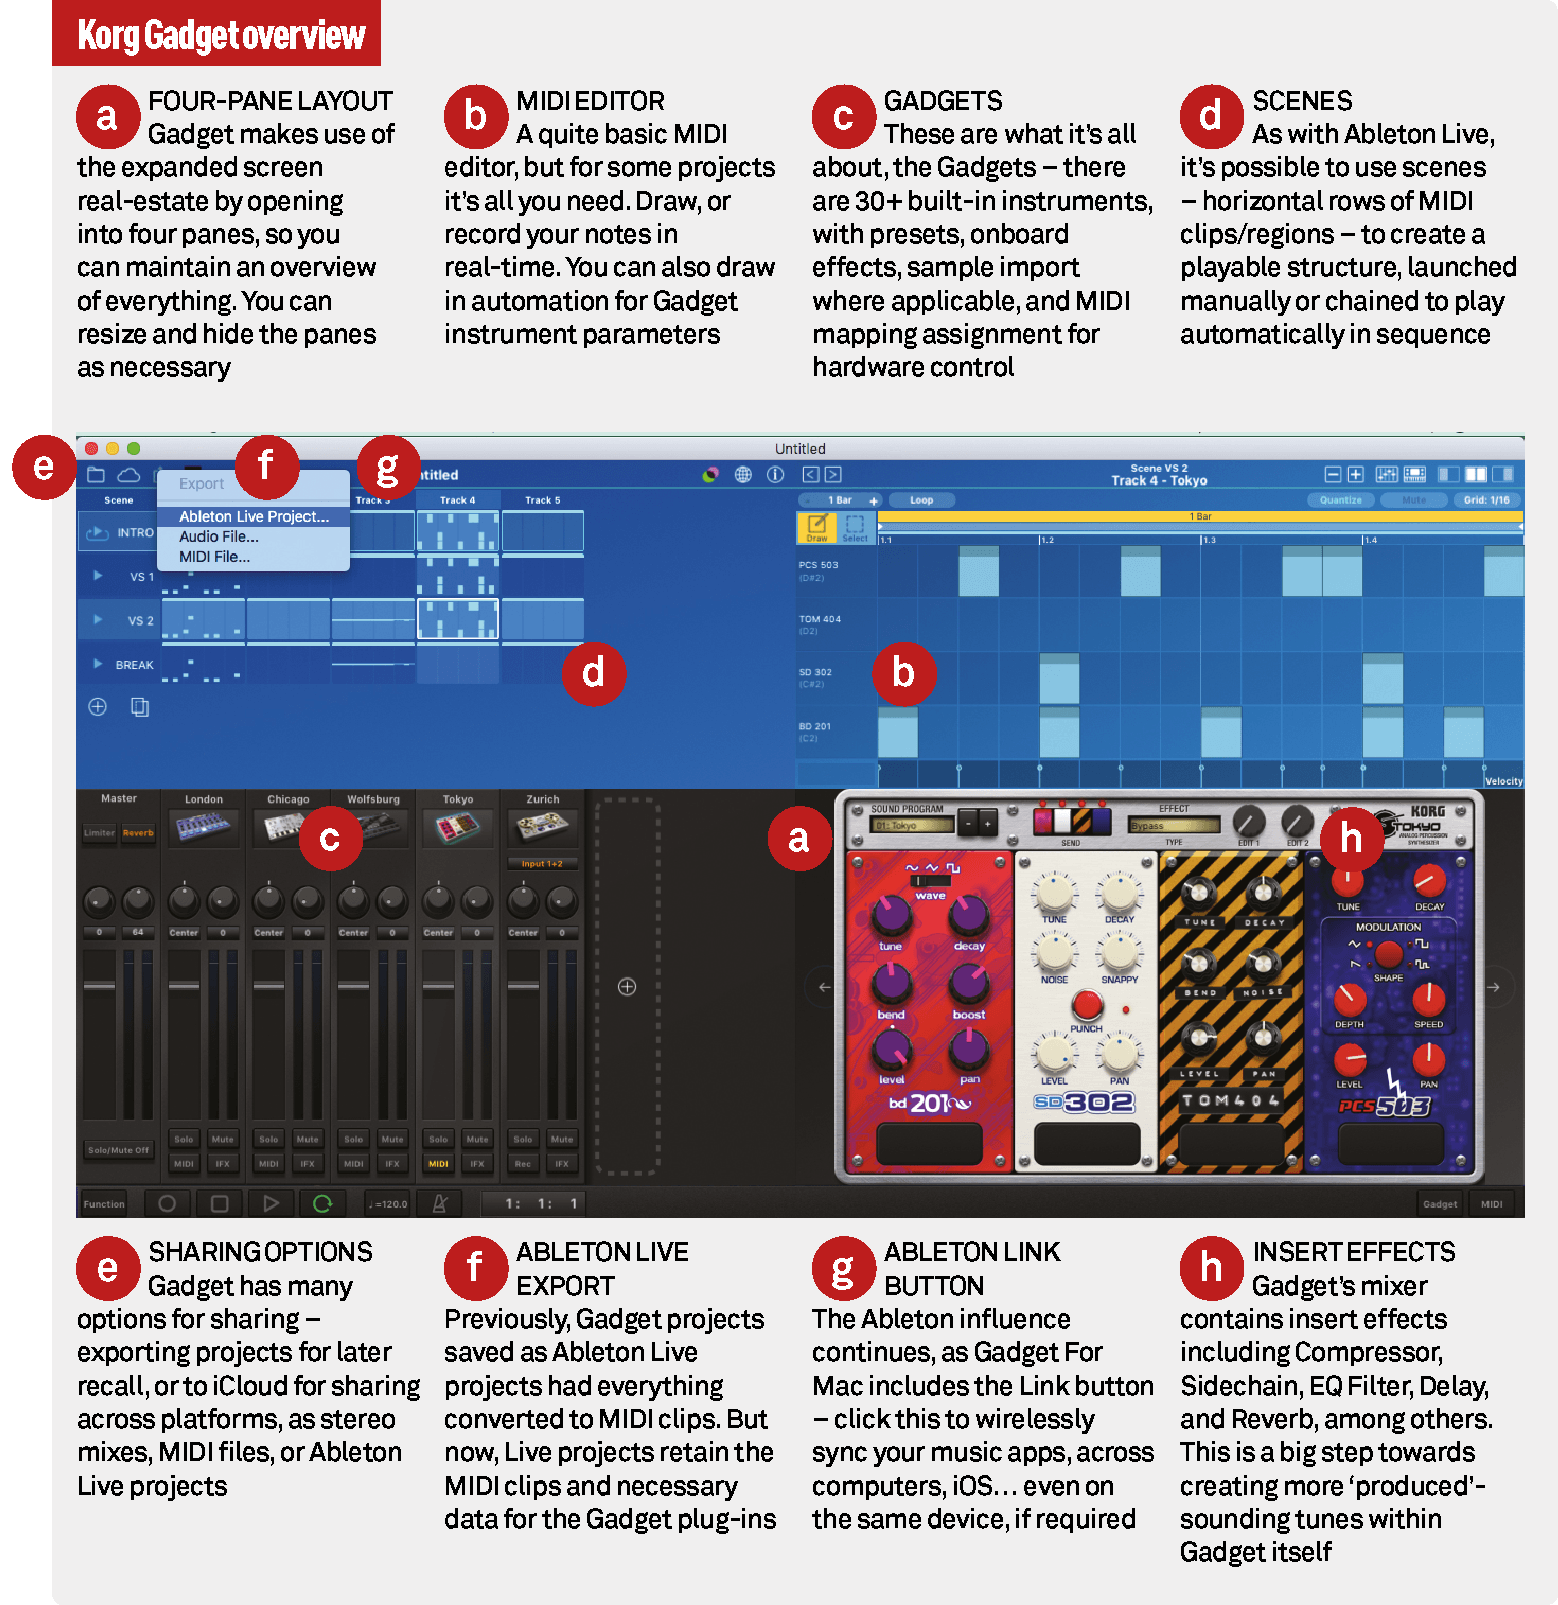 korg s gadget for mac review an absolute must have musictech net a four pane layout gadget makes use of the expanded screen real estate by opening into four panes so you can maintain an overview of everything